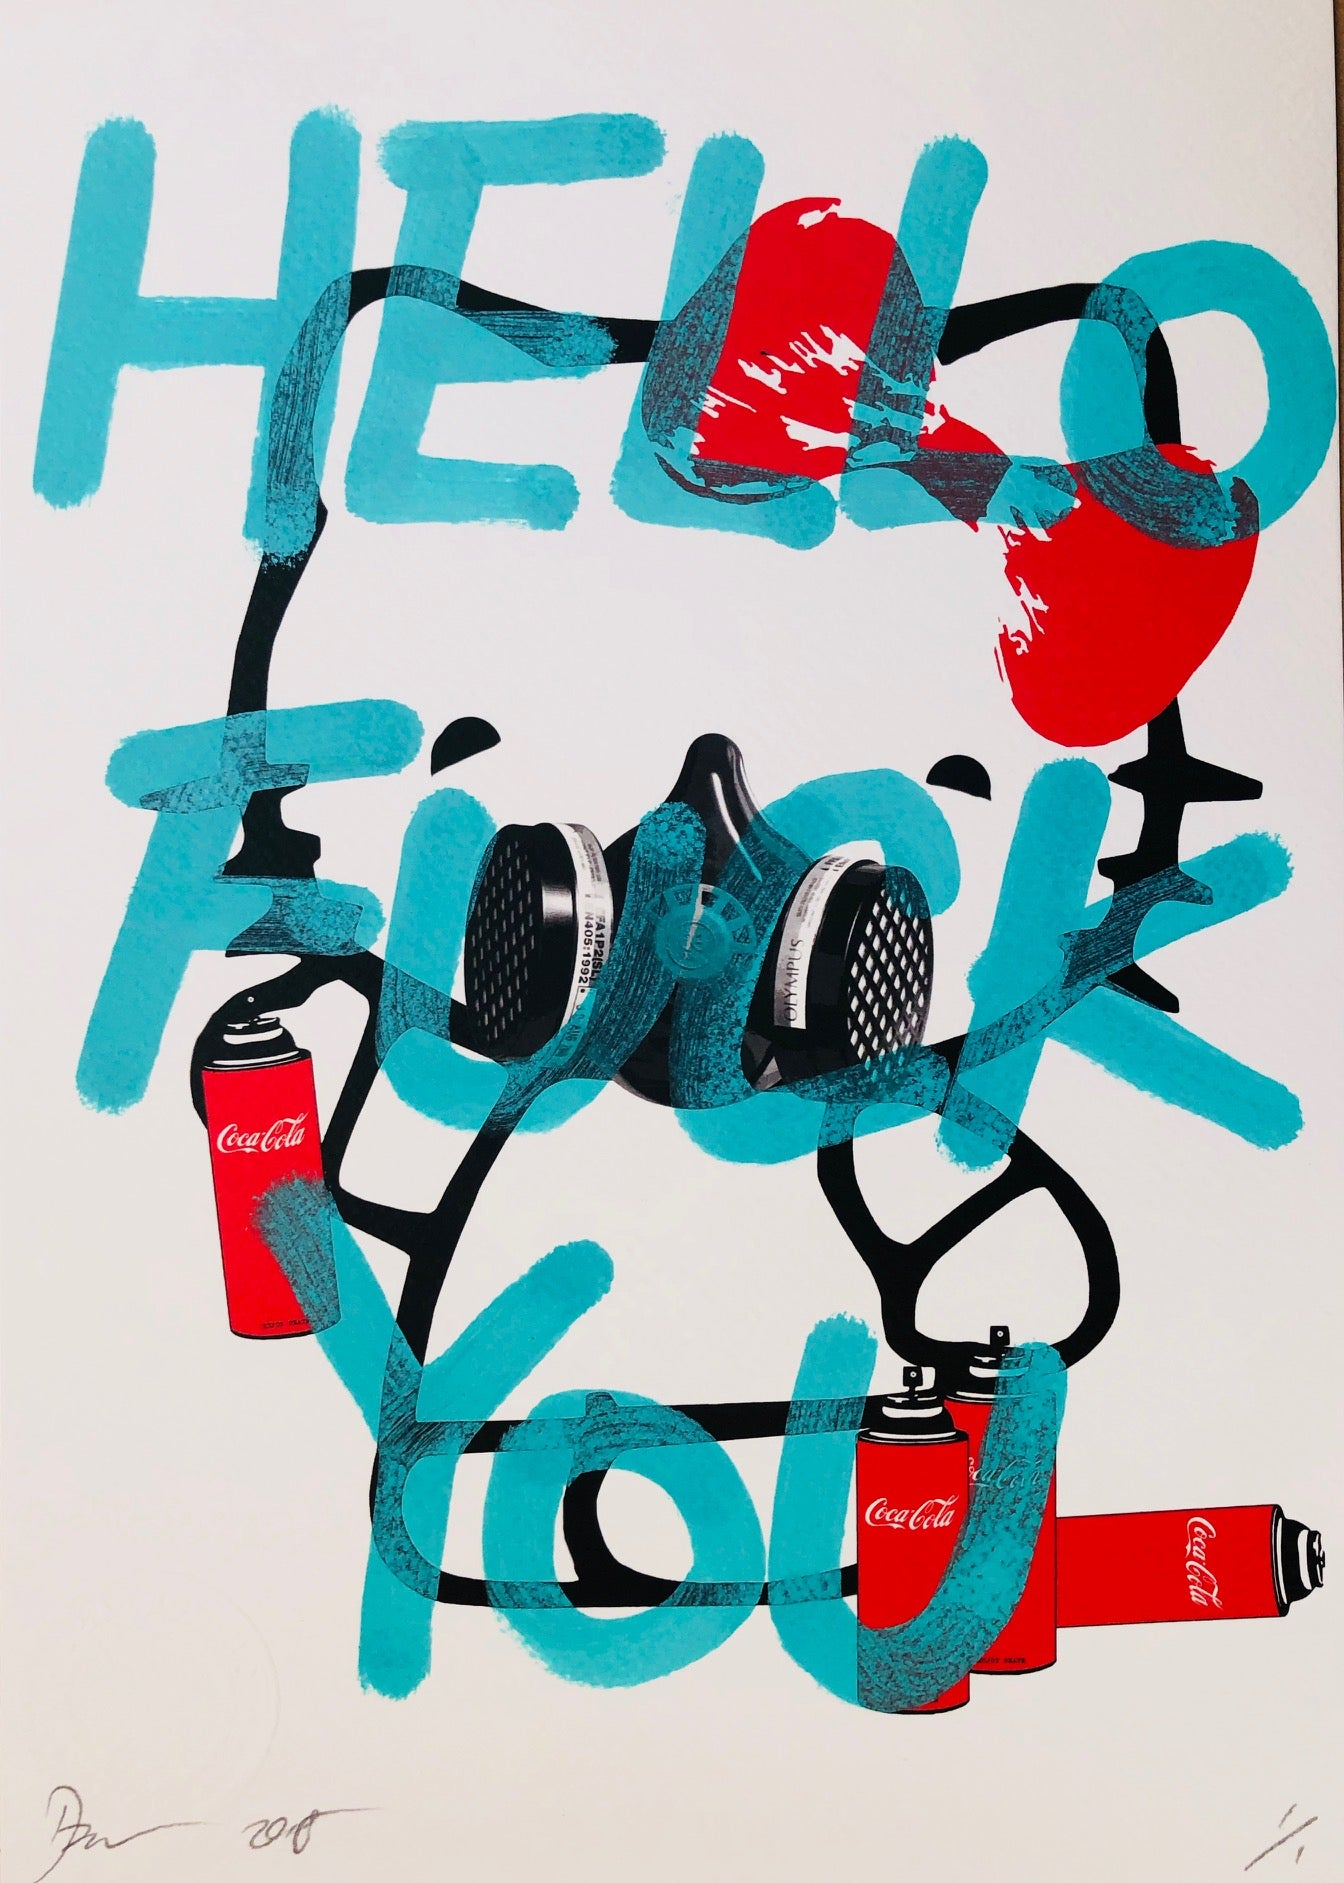 Hello 29x21cm (Edition of 1)